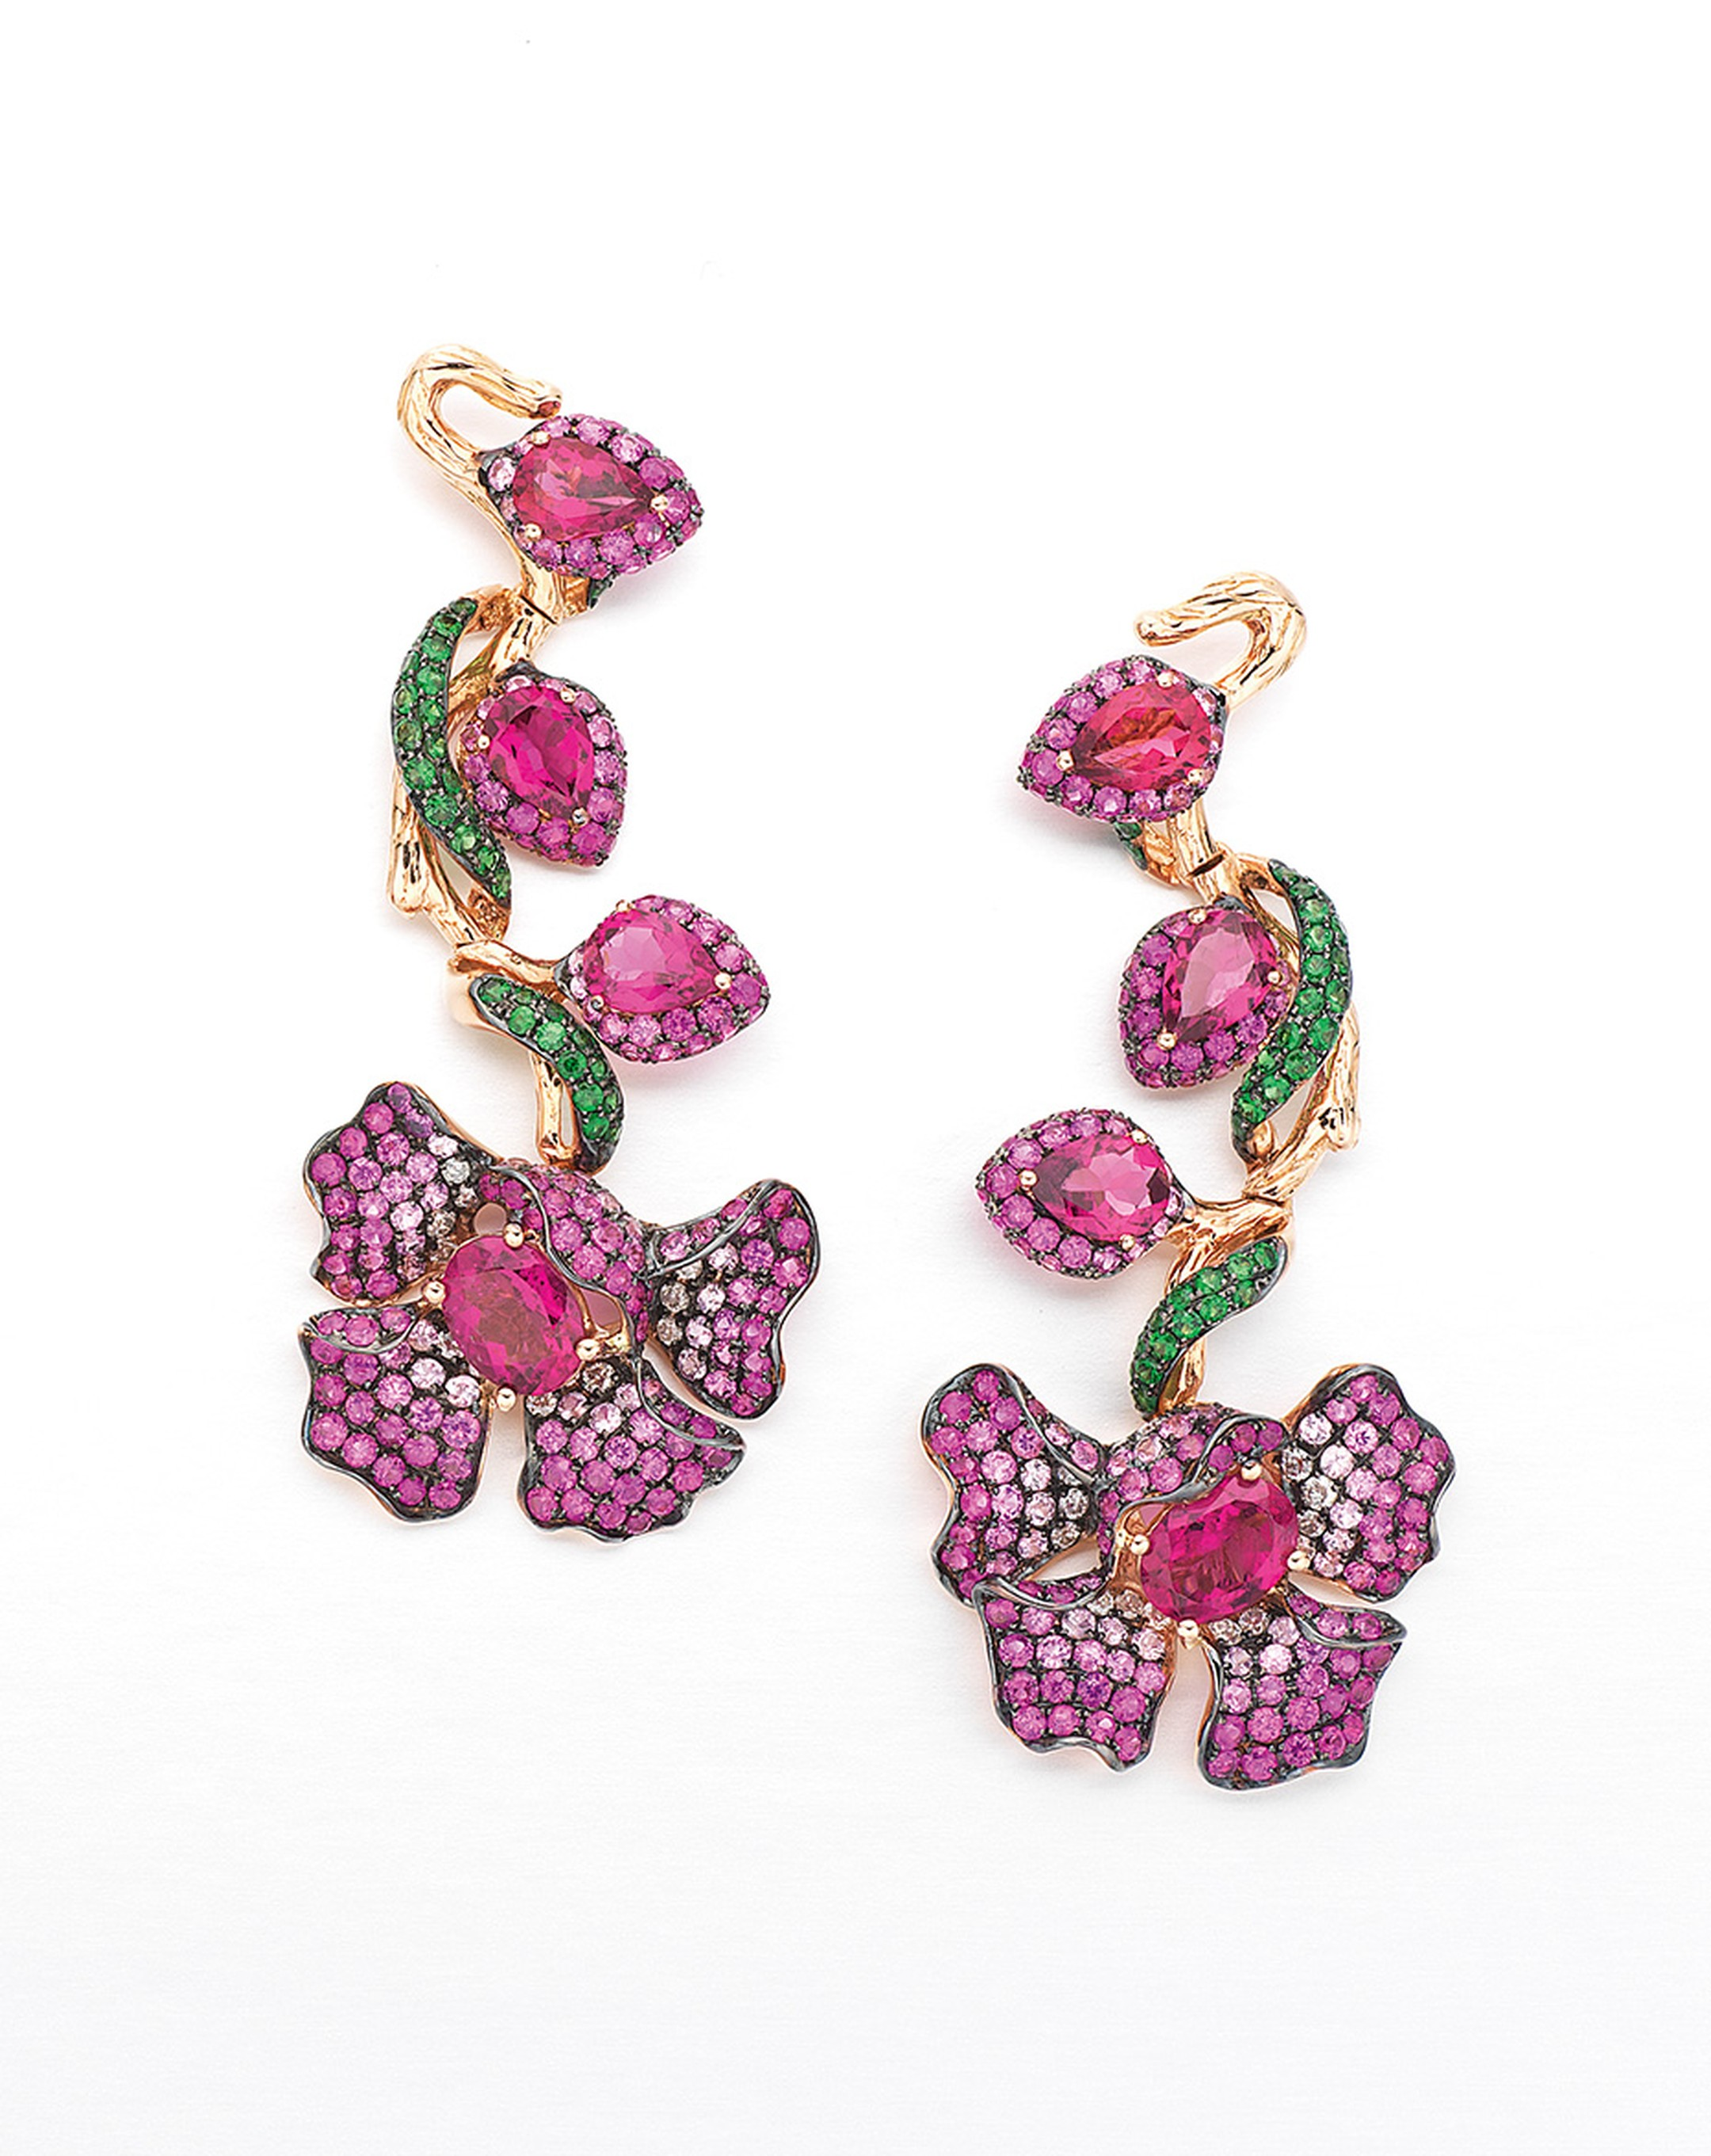 Wendy Yue's diamond arrings with rubellites, white sapphires, pink sapphires and tsavourites.